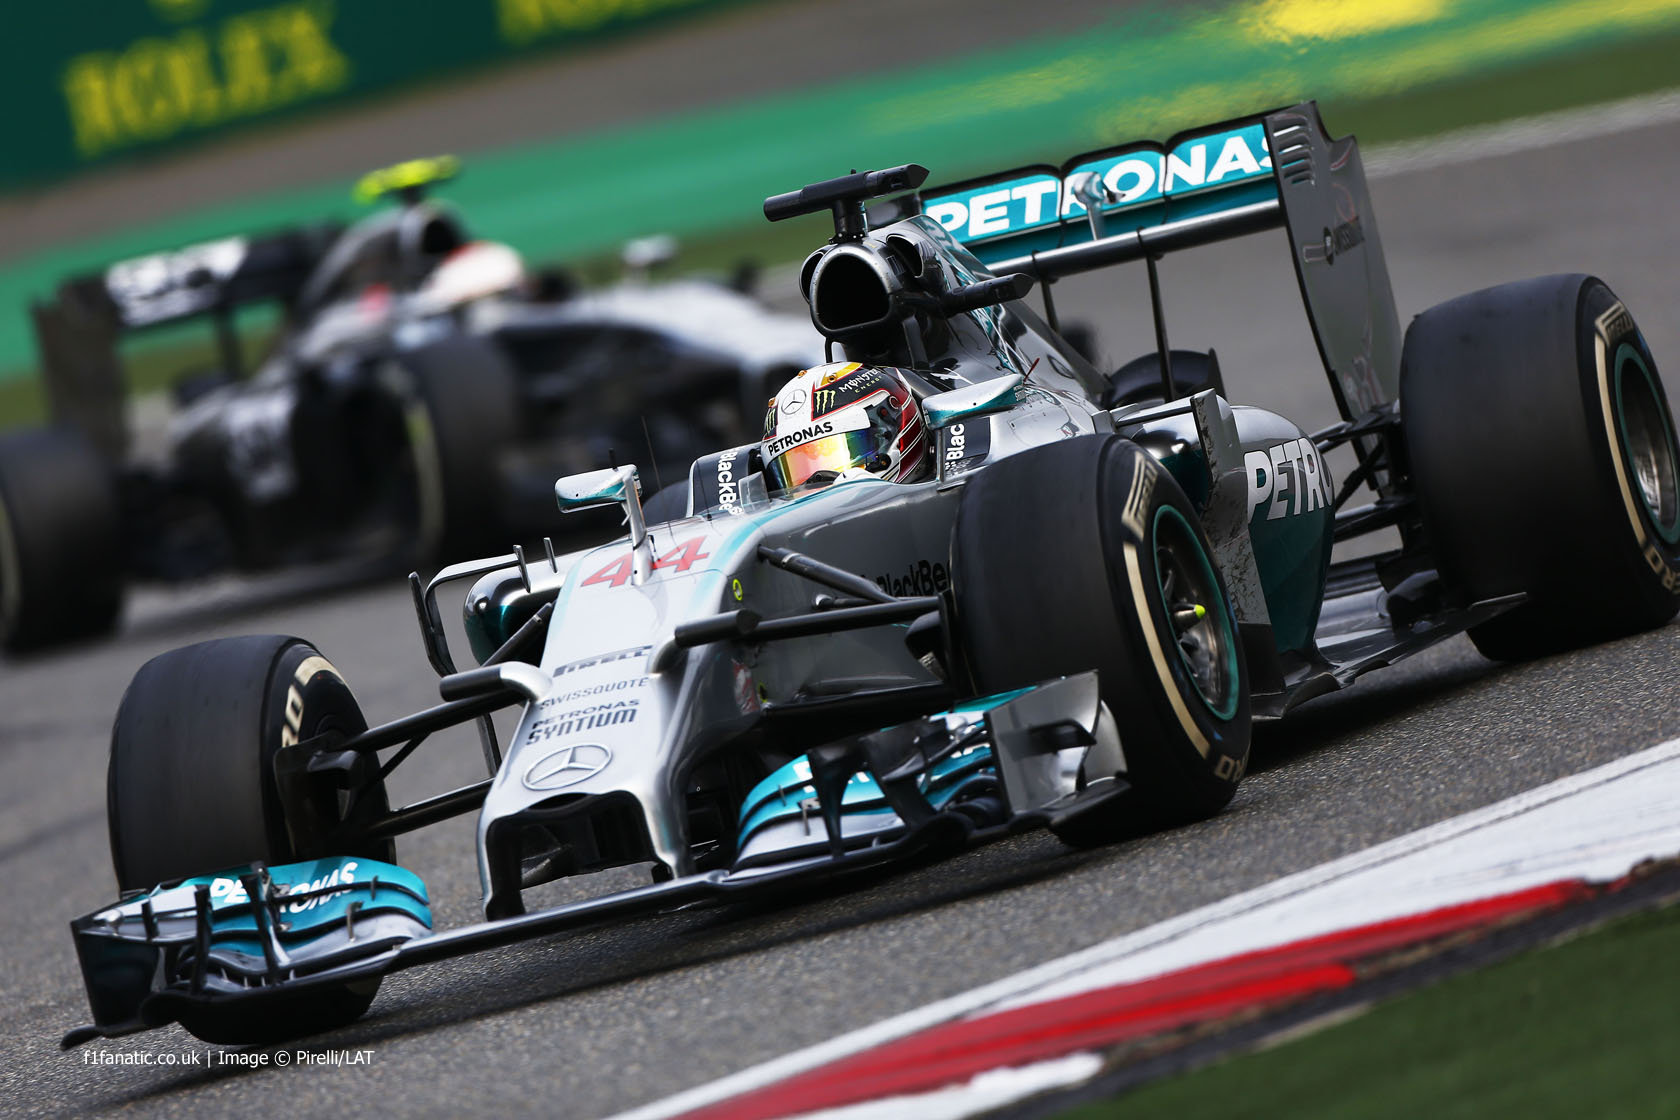 Lewis Hamilton, Mercedes, Shanghai International Circuit, 2014